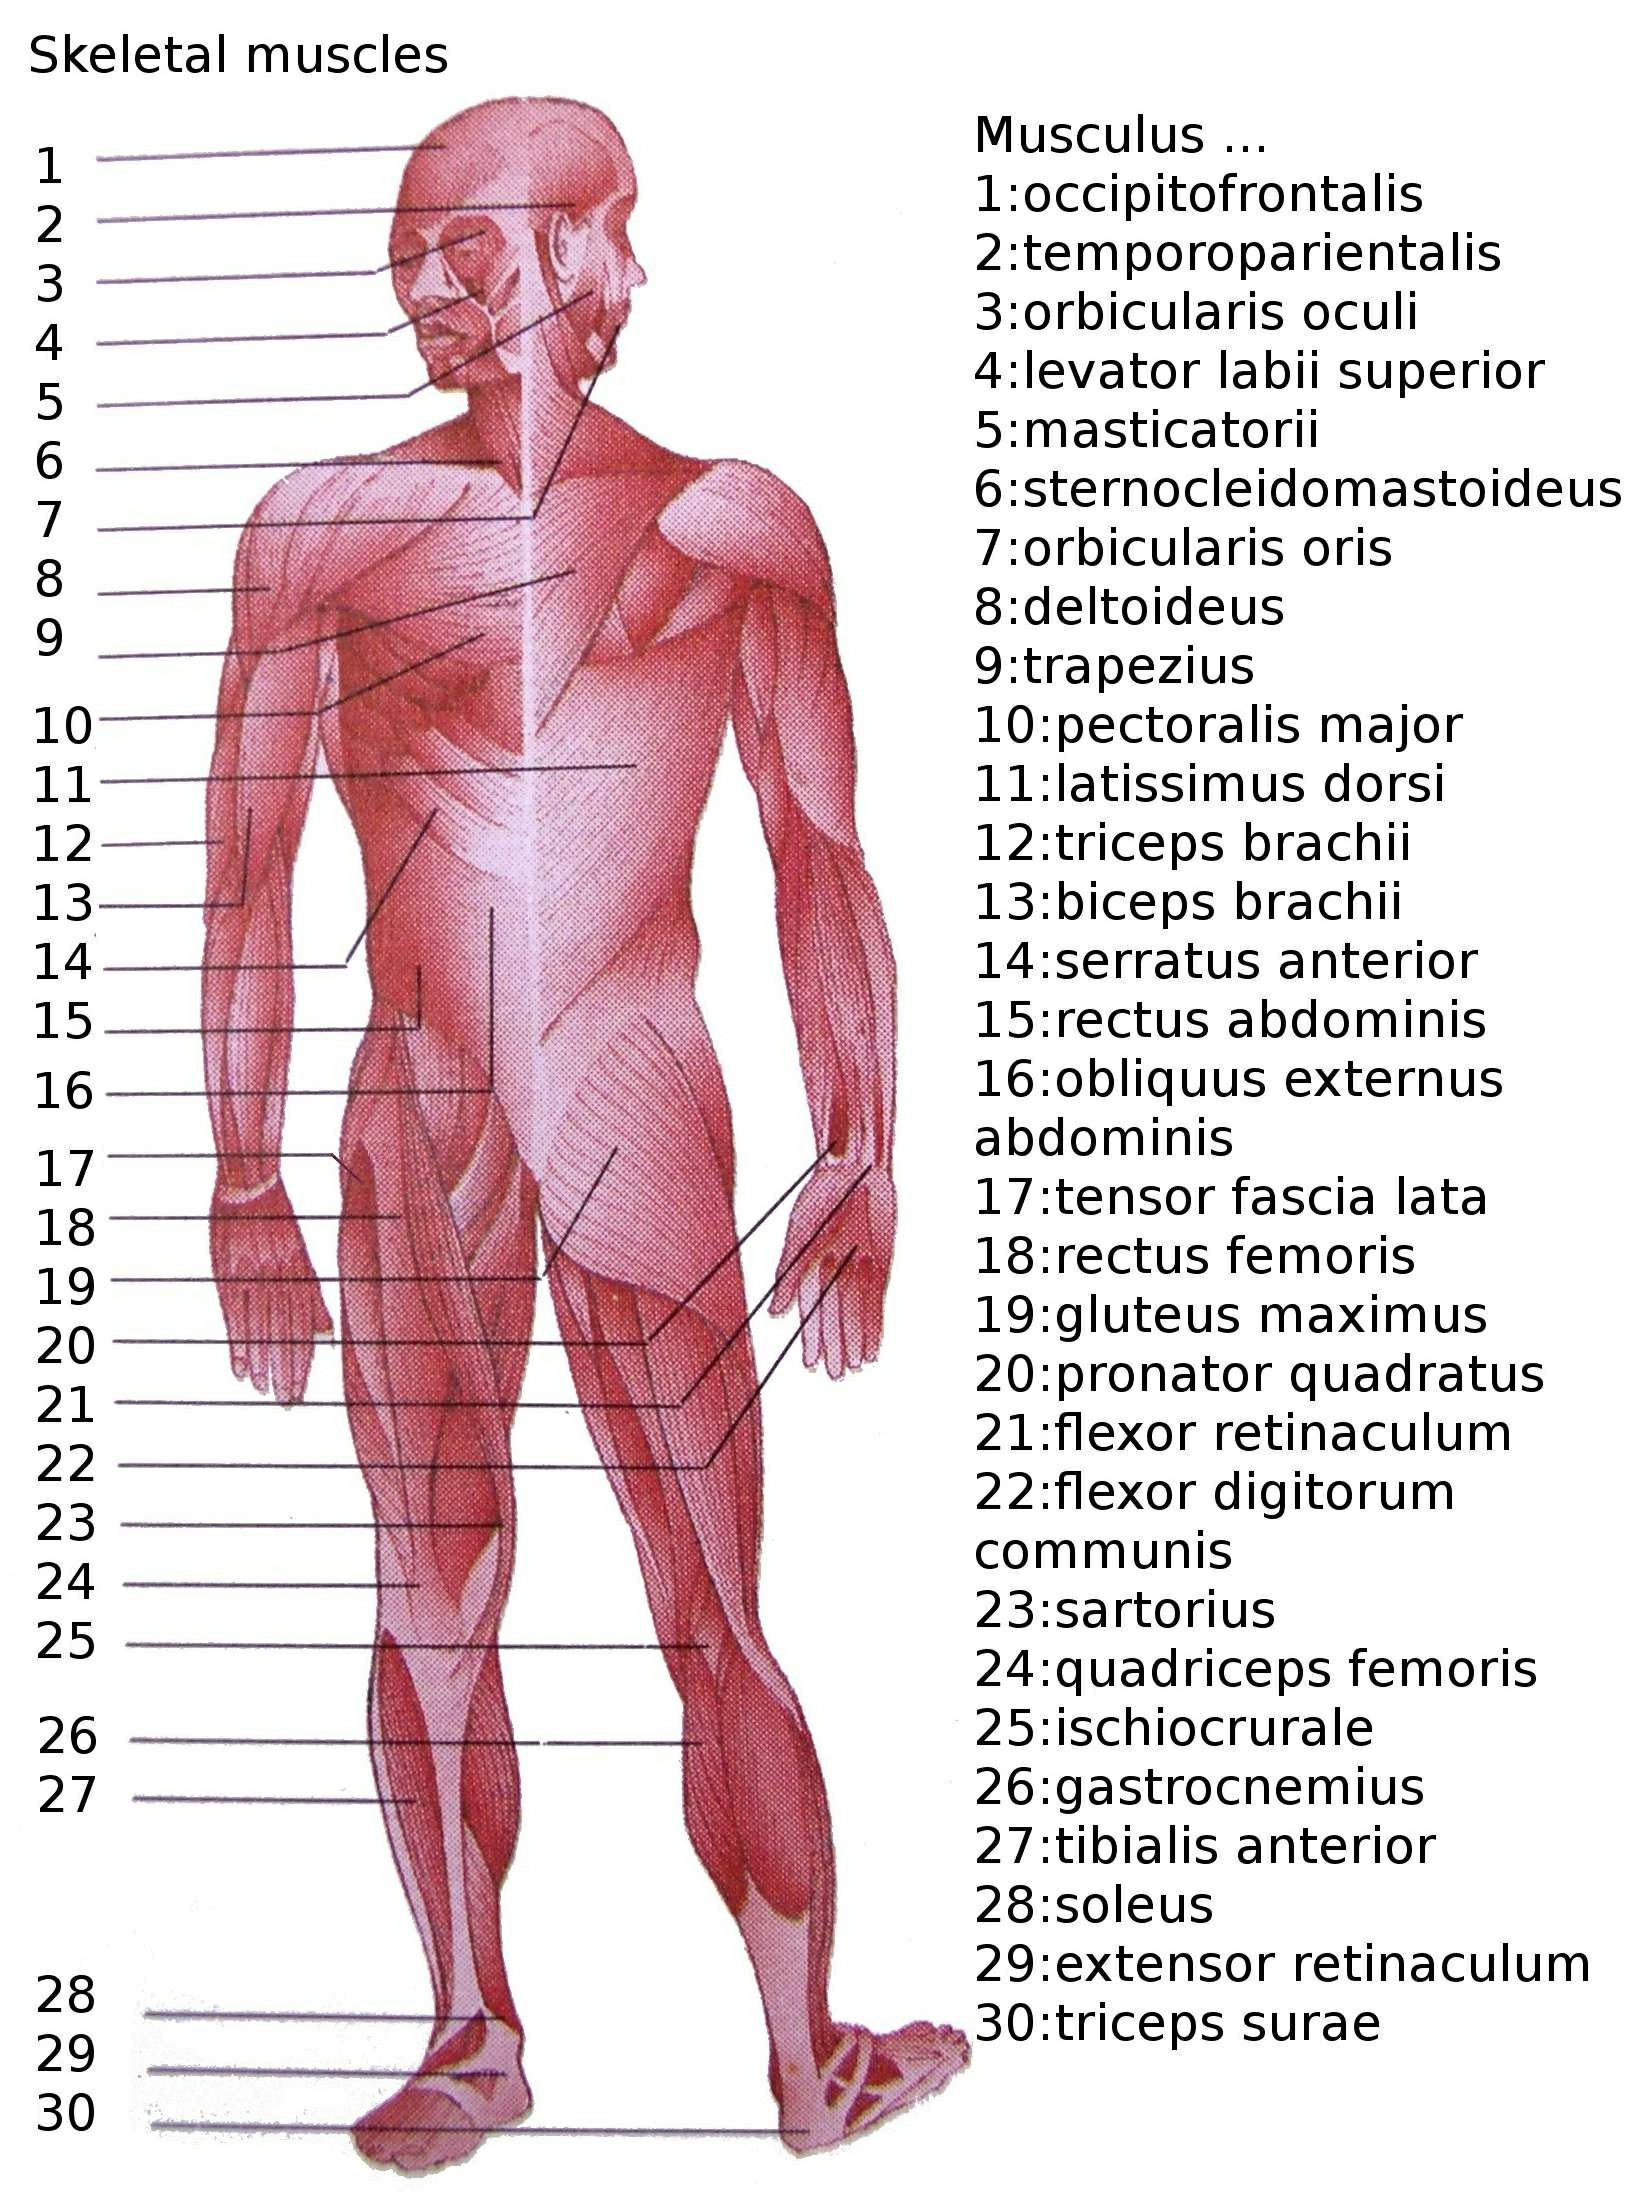 Muscle Images Of Human Body List Of Skeletal Muscles Of The Human Body   Wikipedia